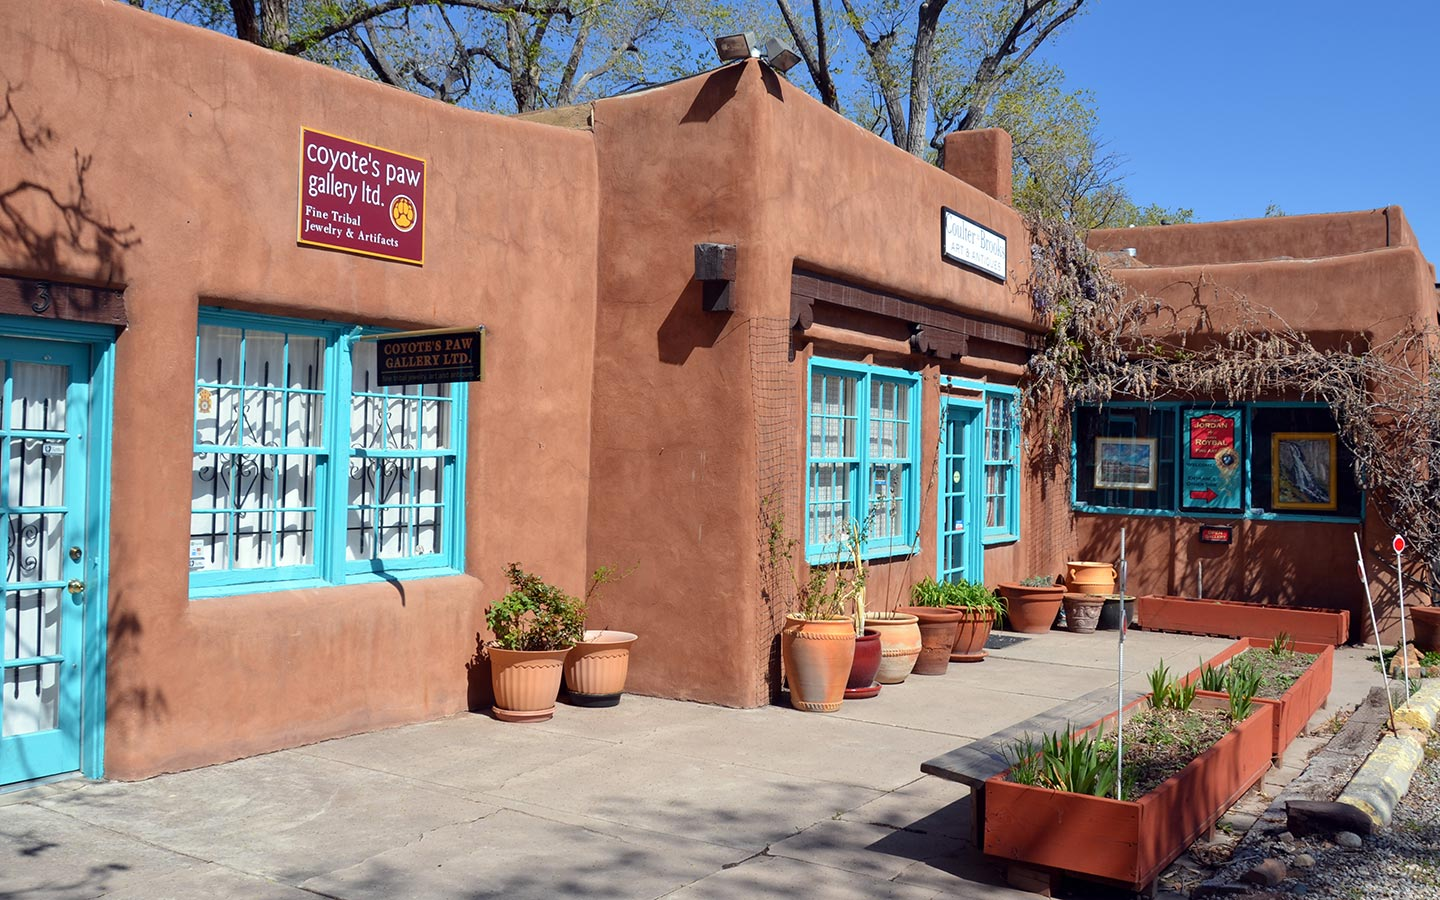 The Art Galleries of Santa Fe